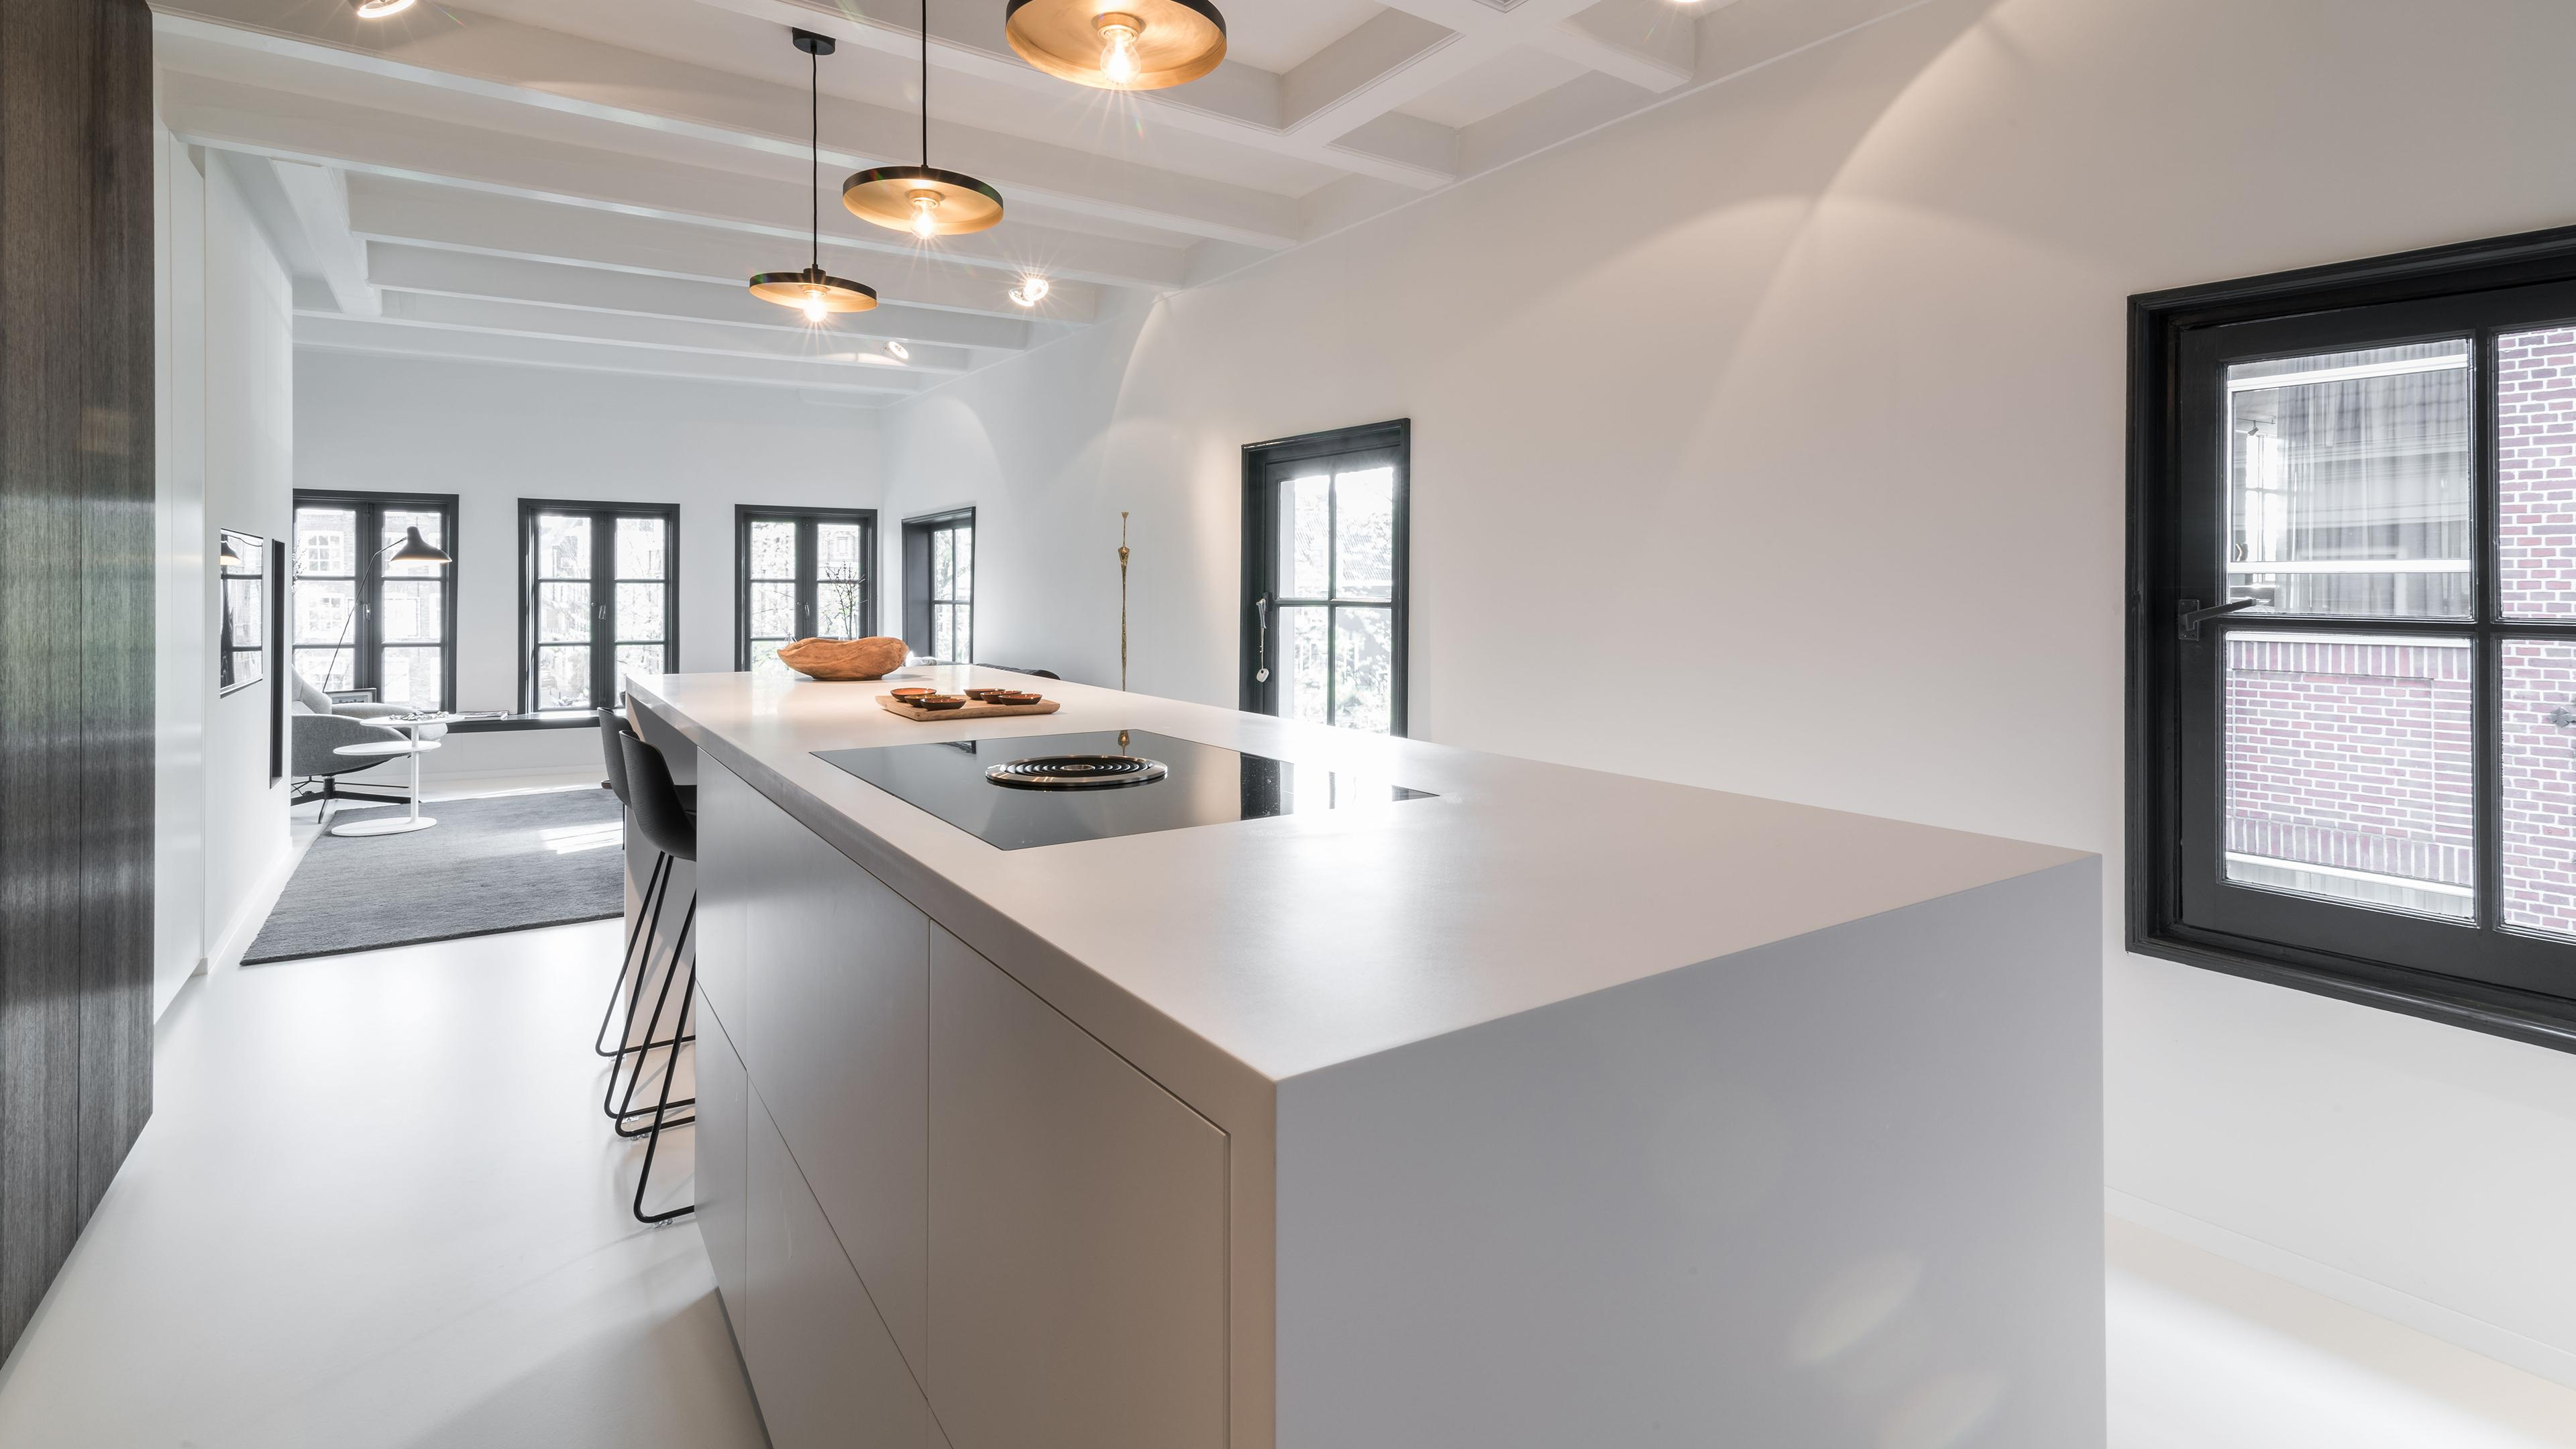 Kool_Kitchen_Constantin_Loft_Basic_015_Headerbild_L.jpg